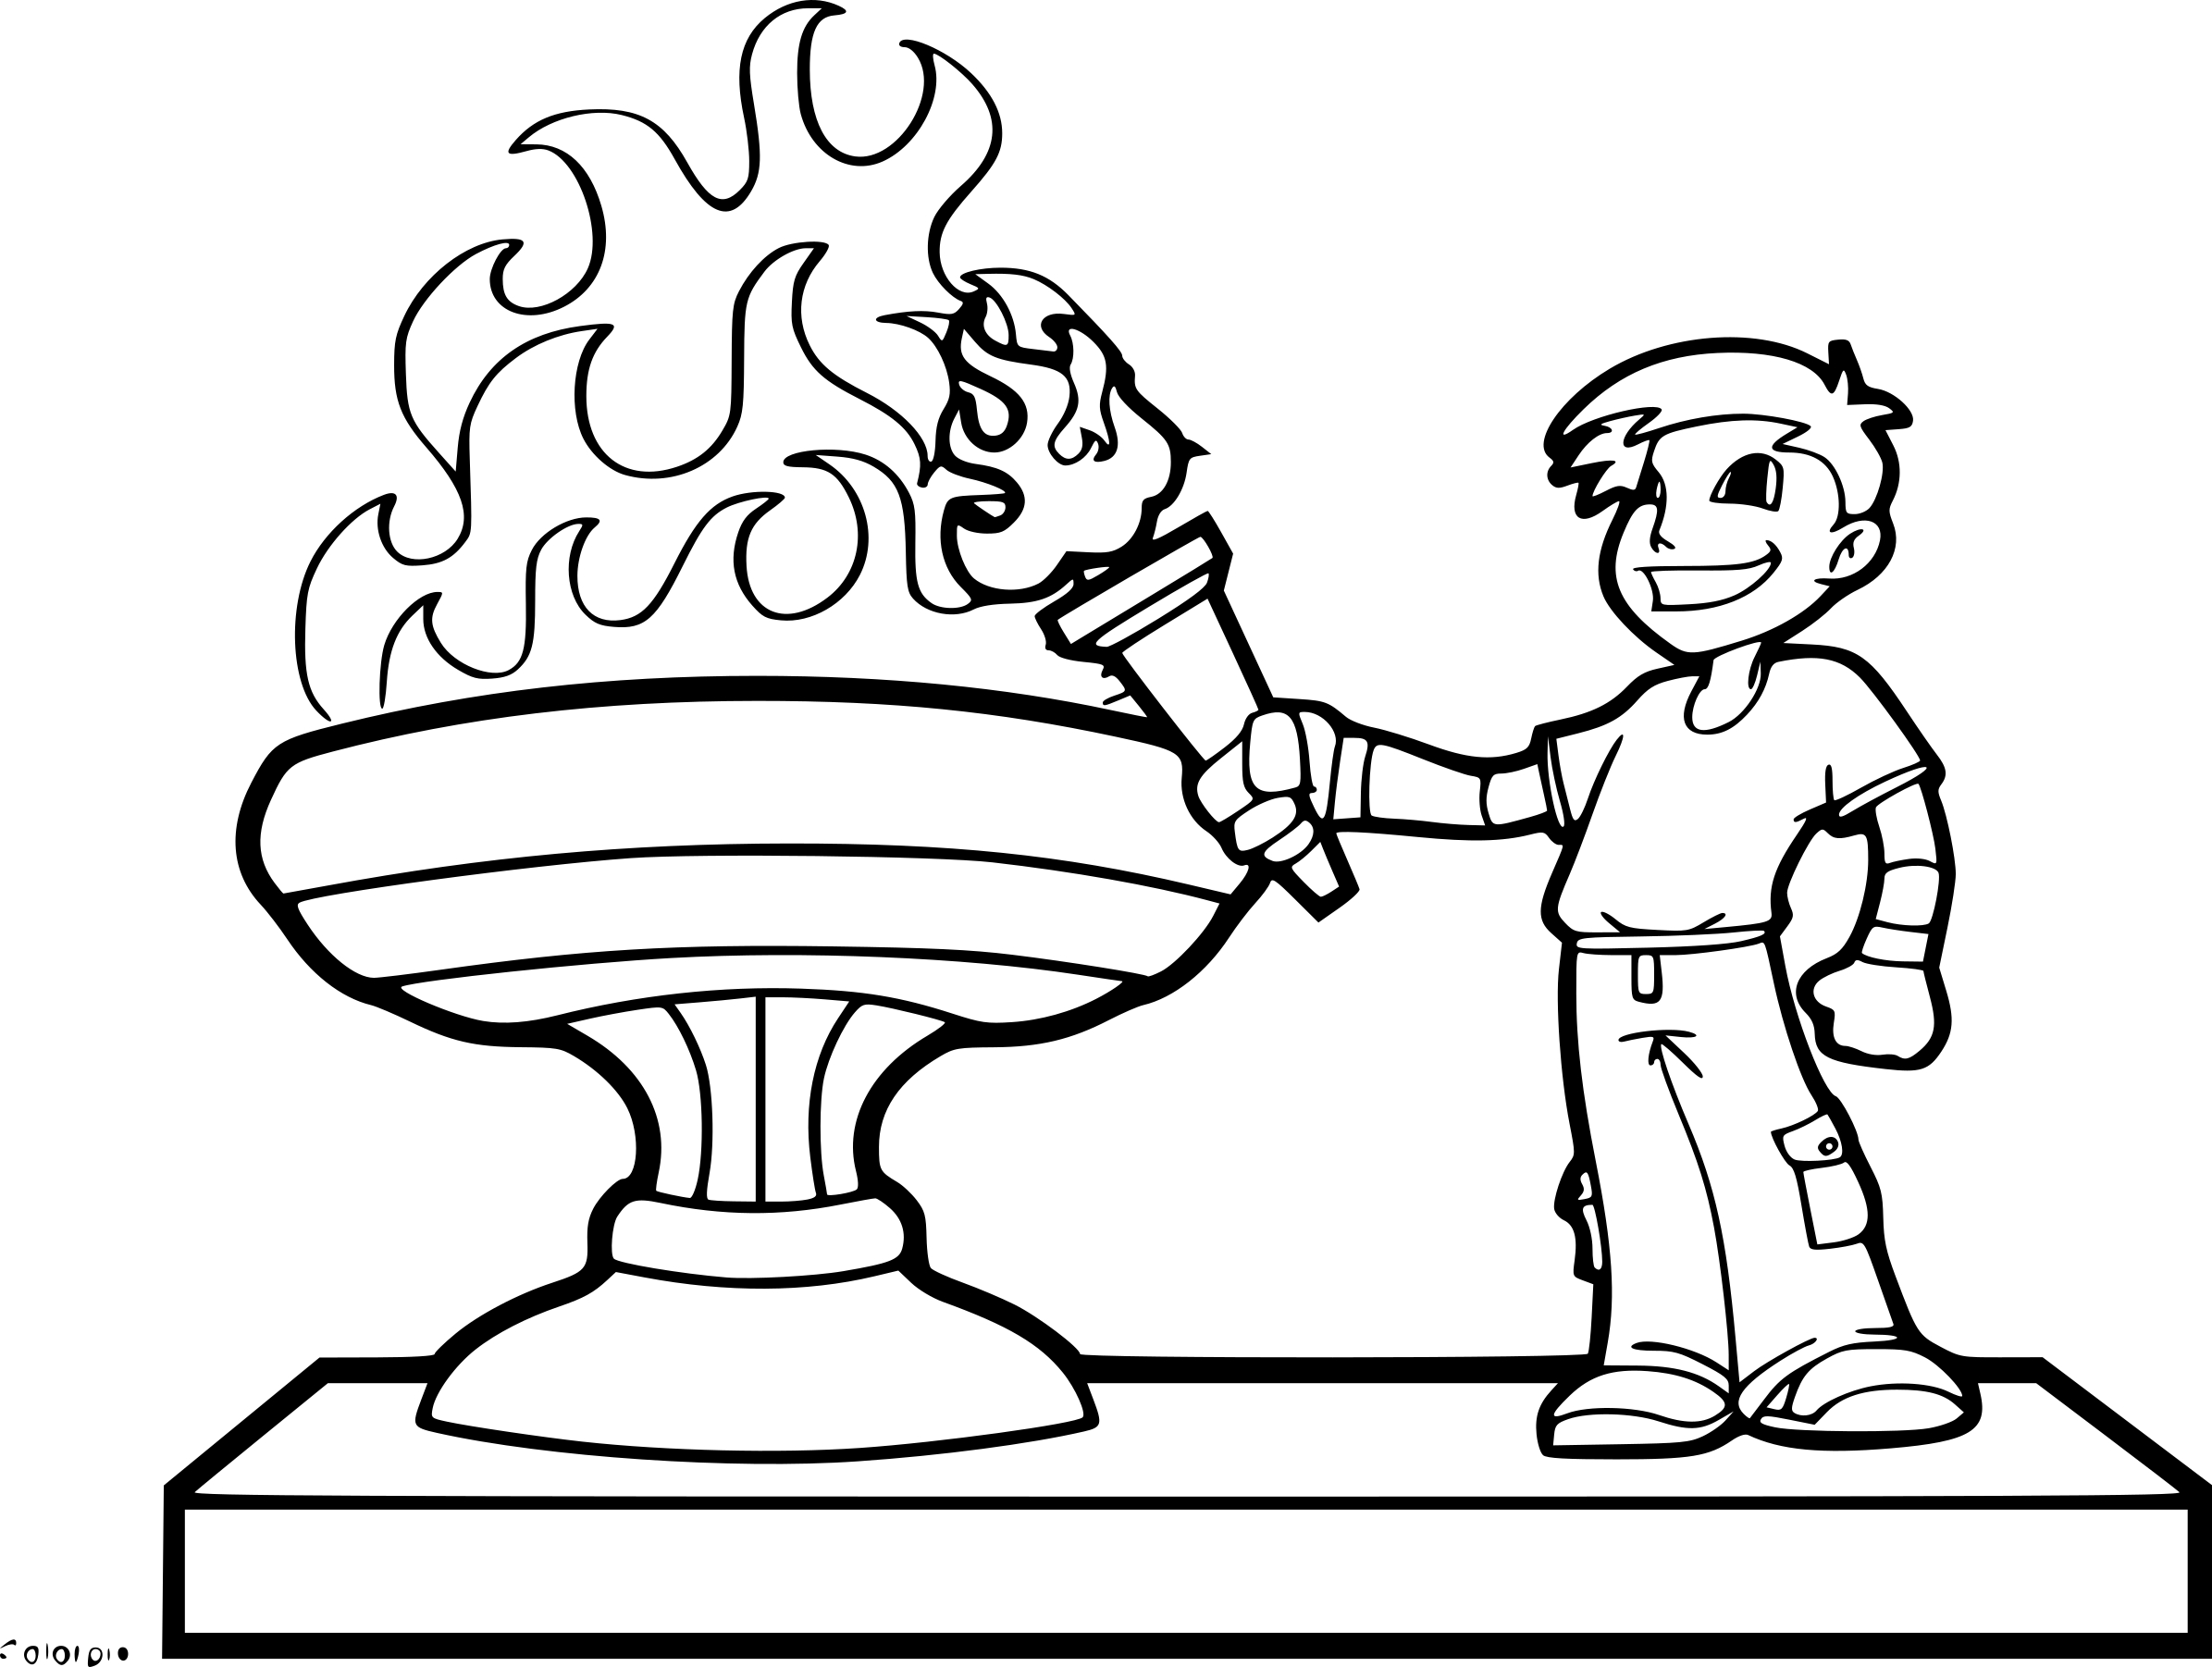 Coloriage flamme olympique